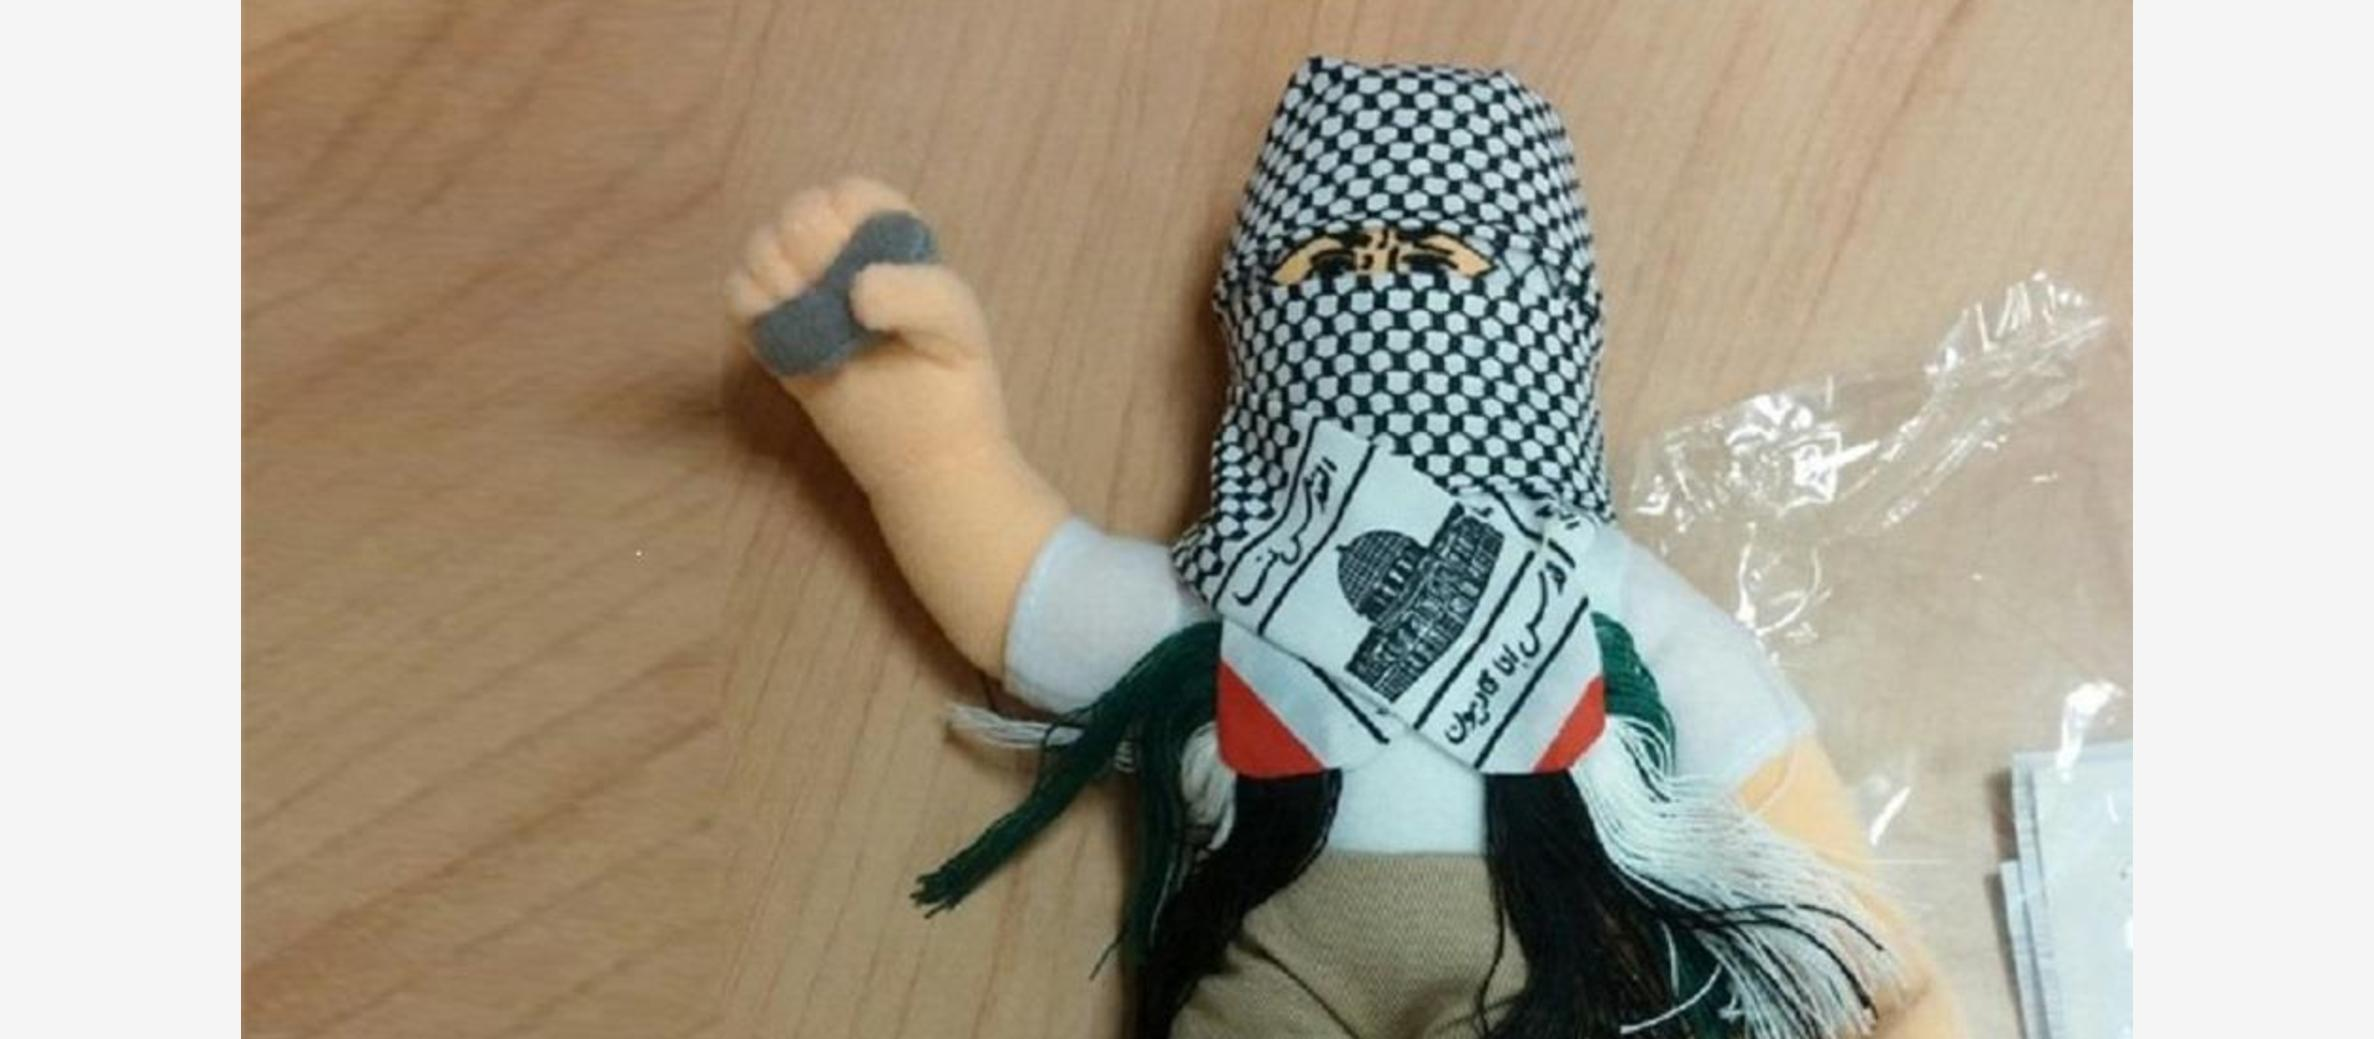 Israel seizes thousands of rock-thrower dolls headed for PA